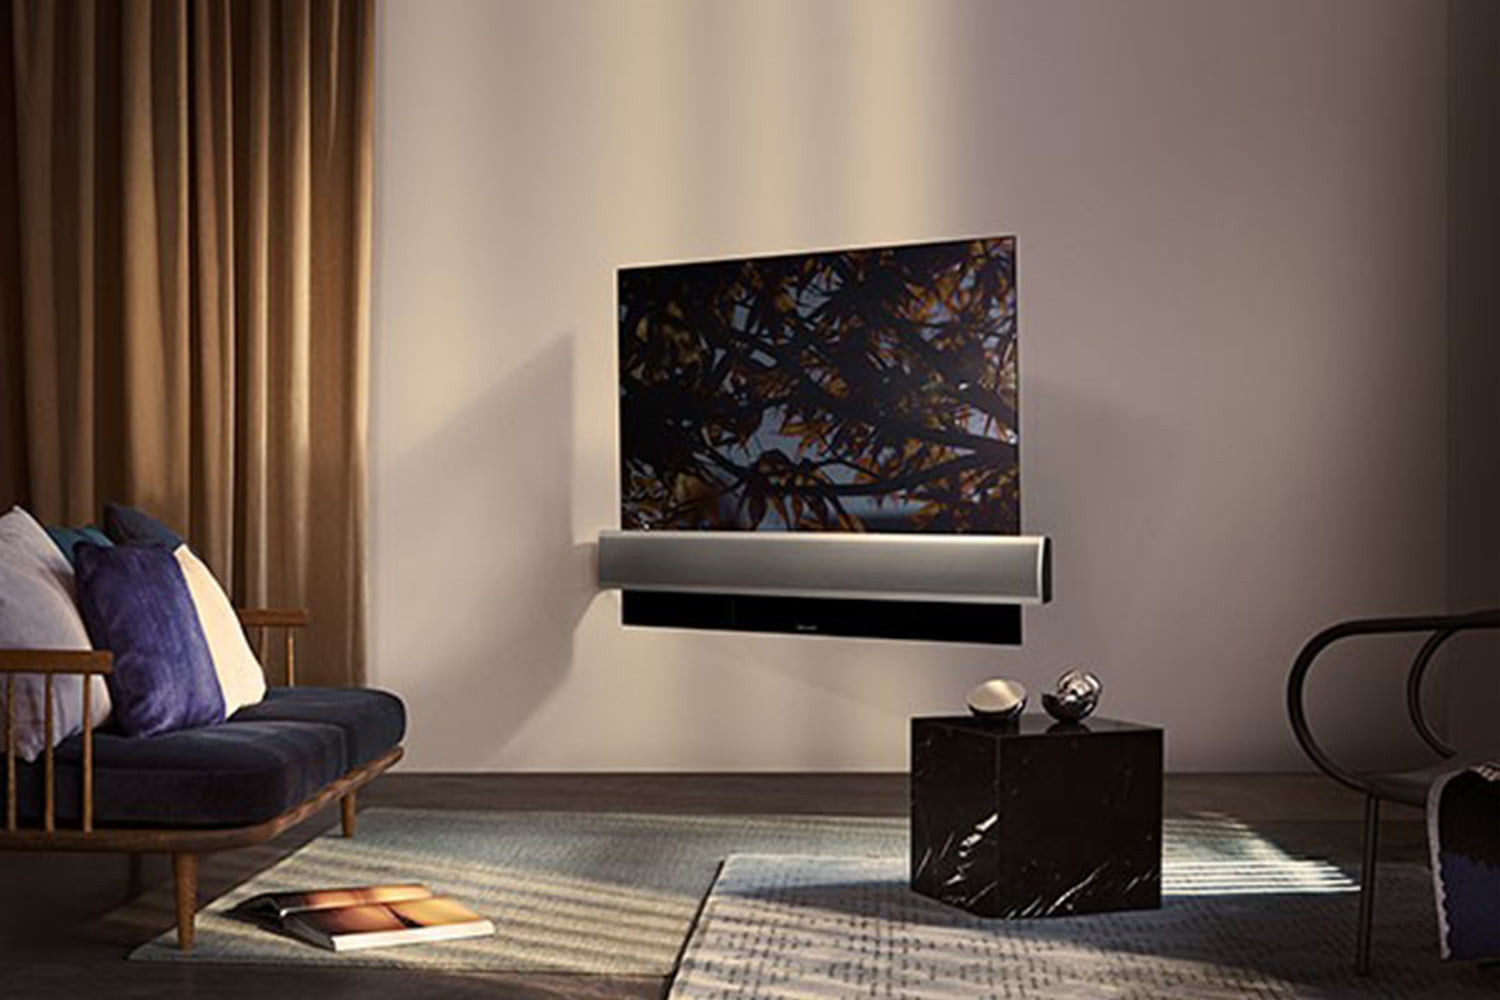 Speakers Beoplay S8, tv Beovision 11 -  Bang&Olufsen